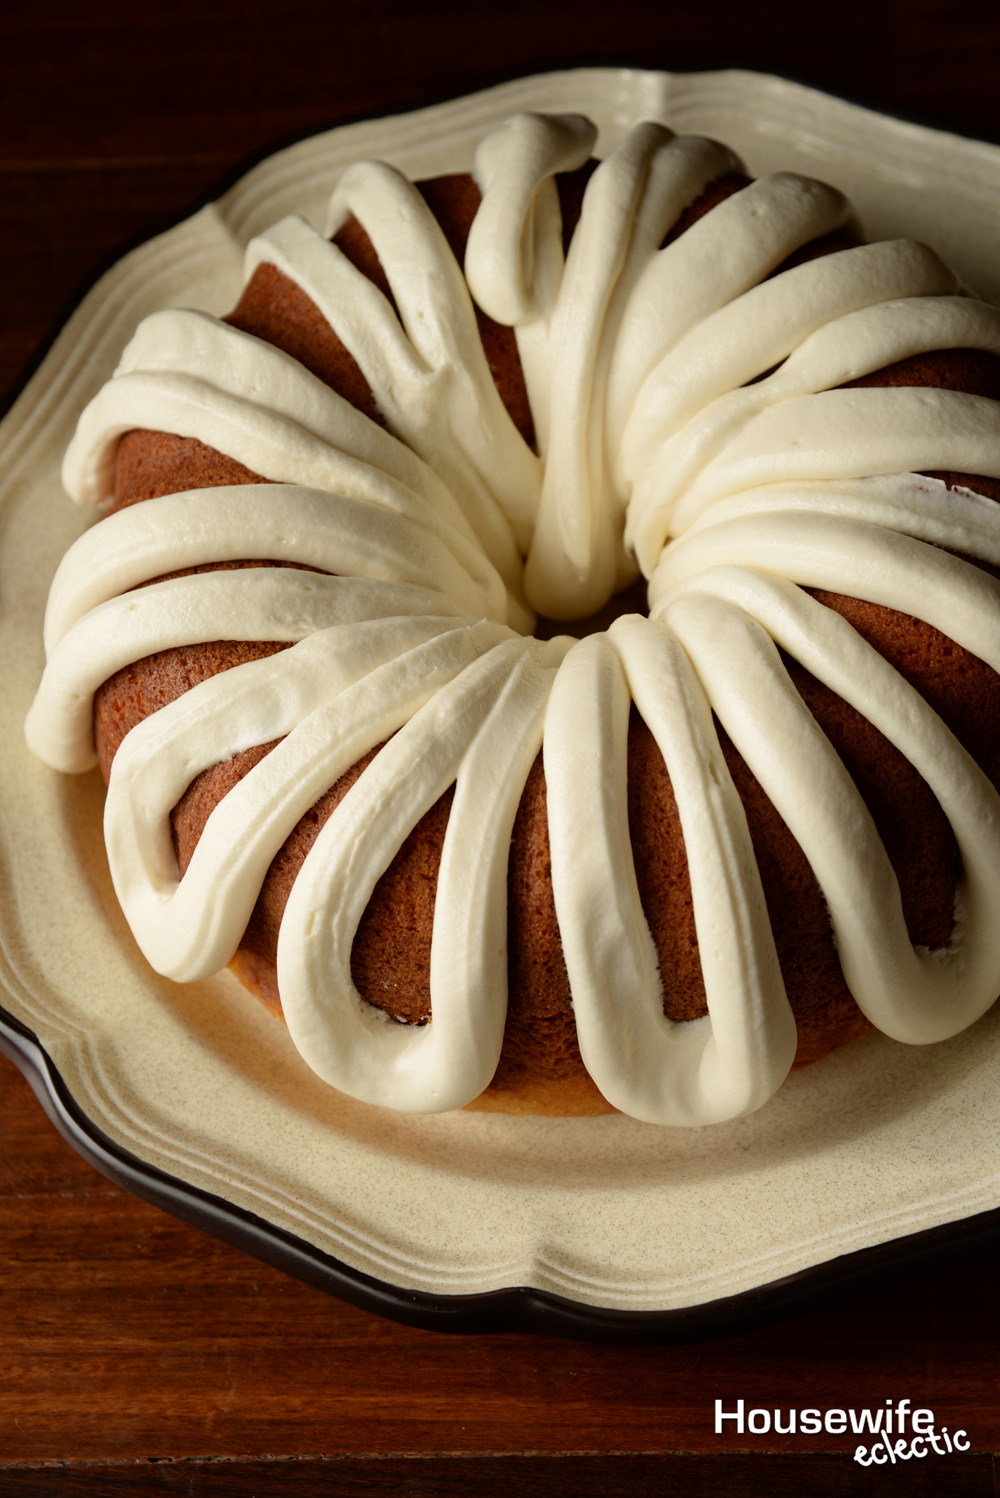 Best Chocolate Icing For A Bundt Cake